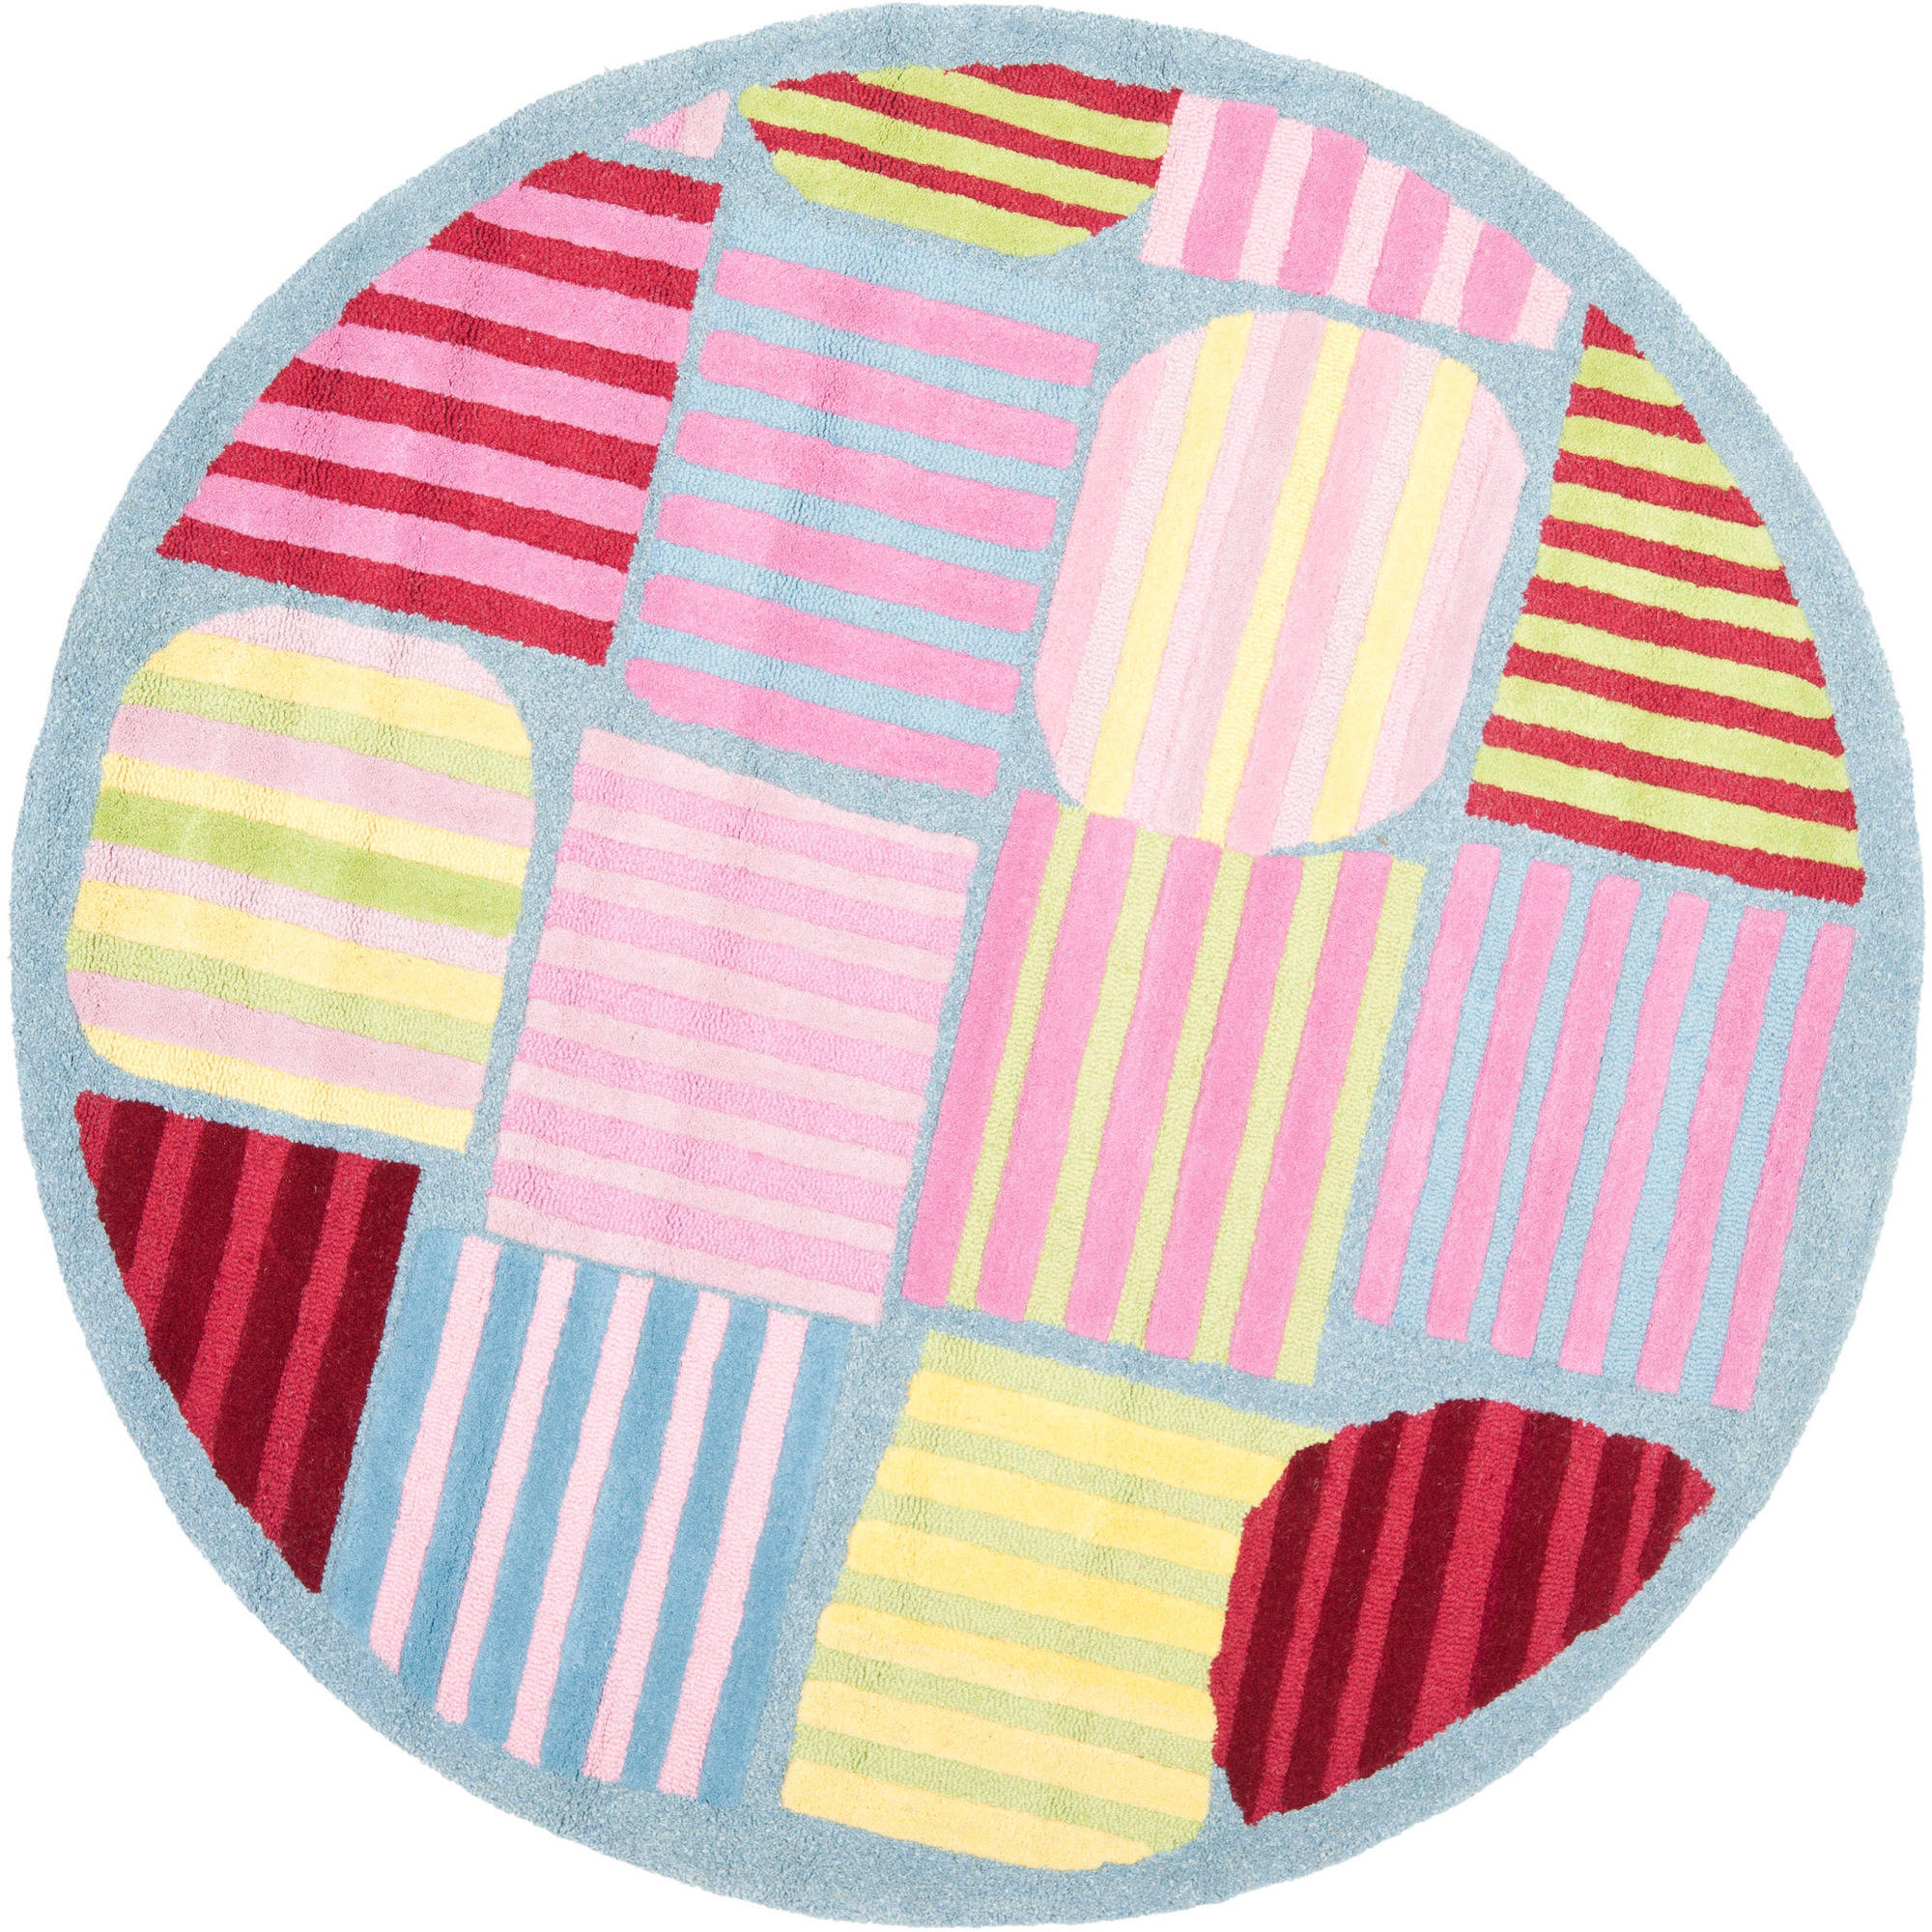 Safavieh Kids Melany Geometric Stripes Round Area Rug